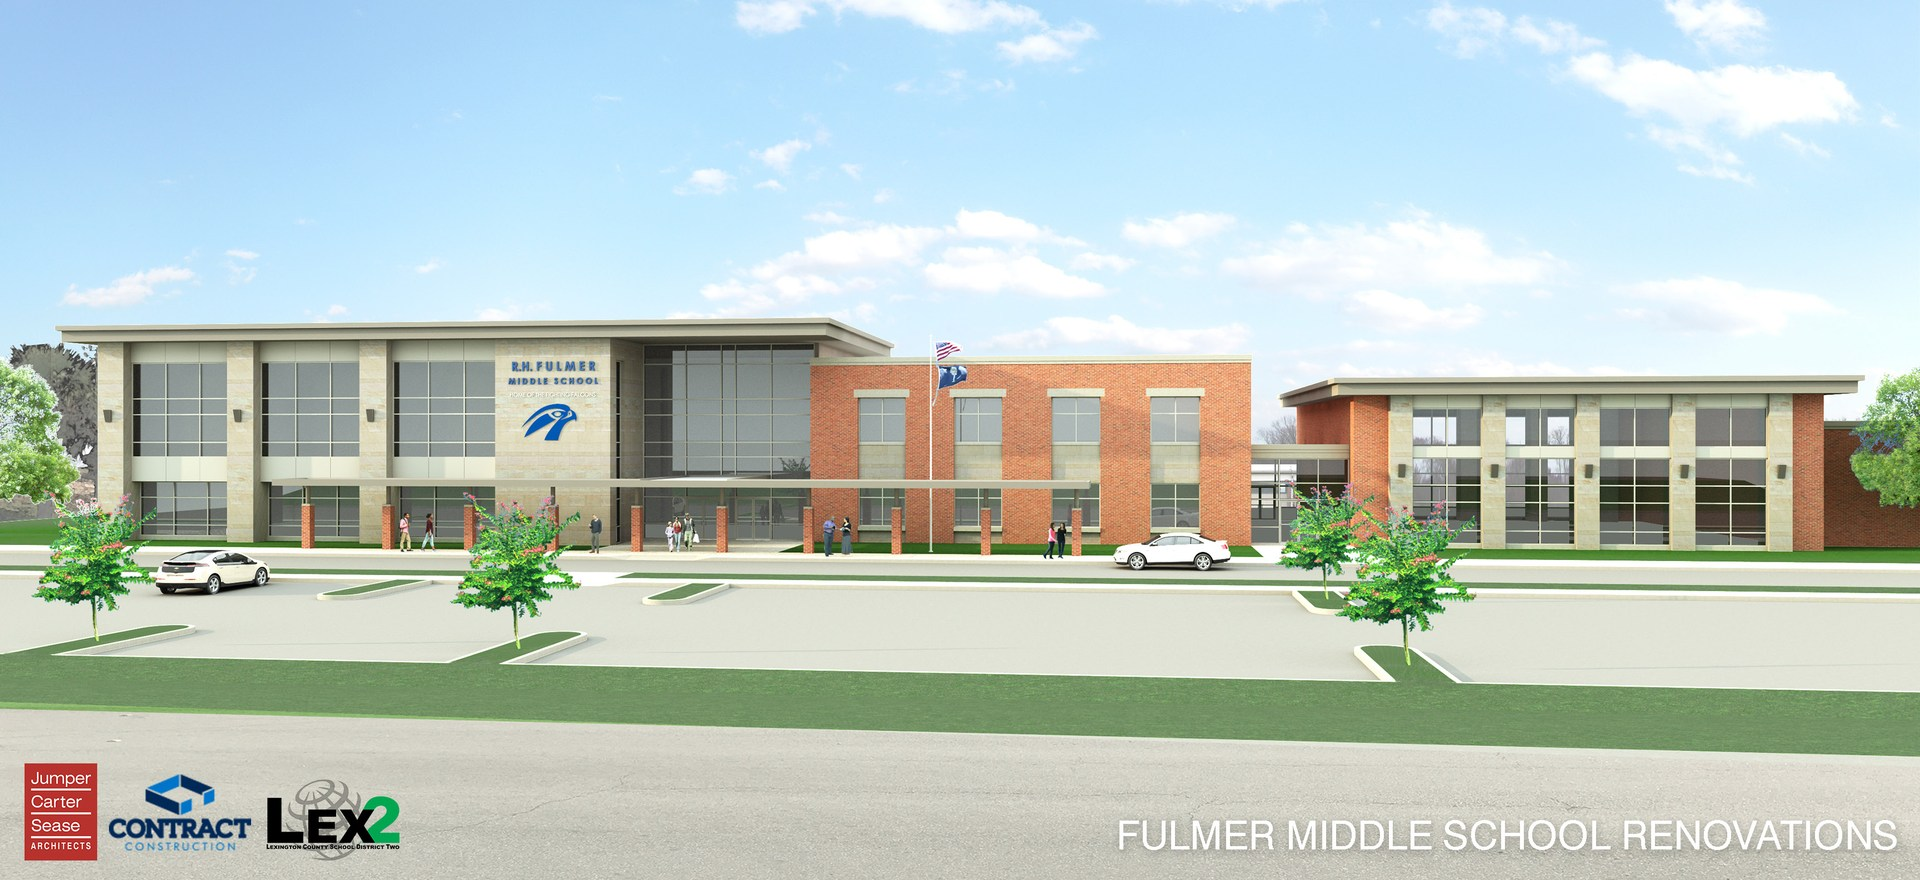 Architect's rendering of Fulmer Middle School renovations scheduled to begin summer 2018.